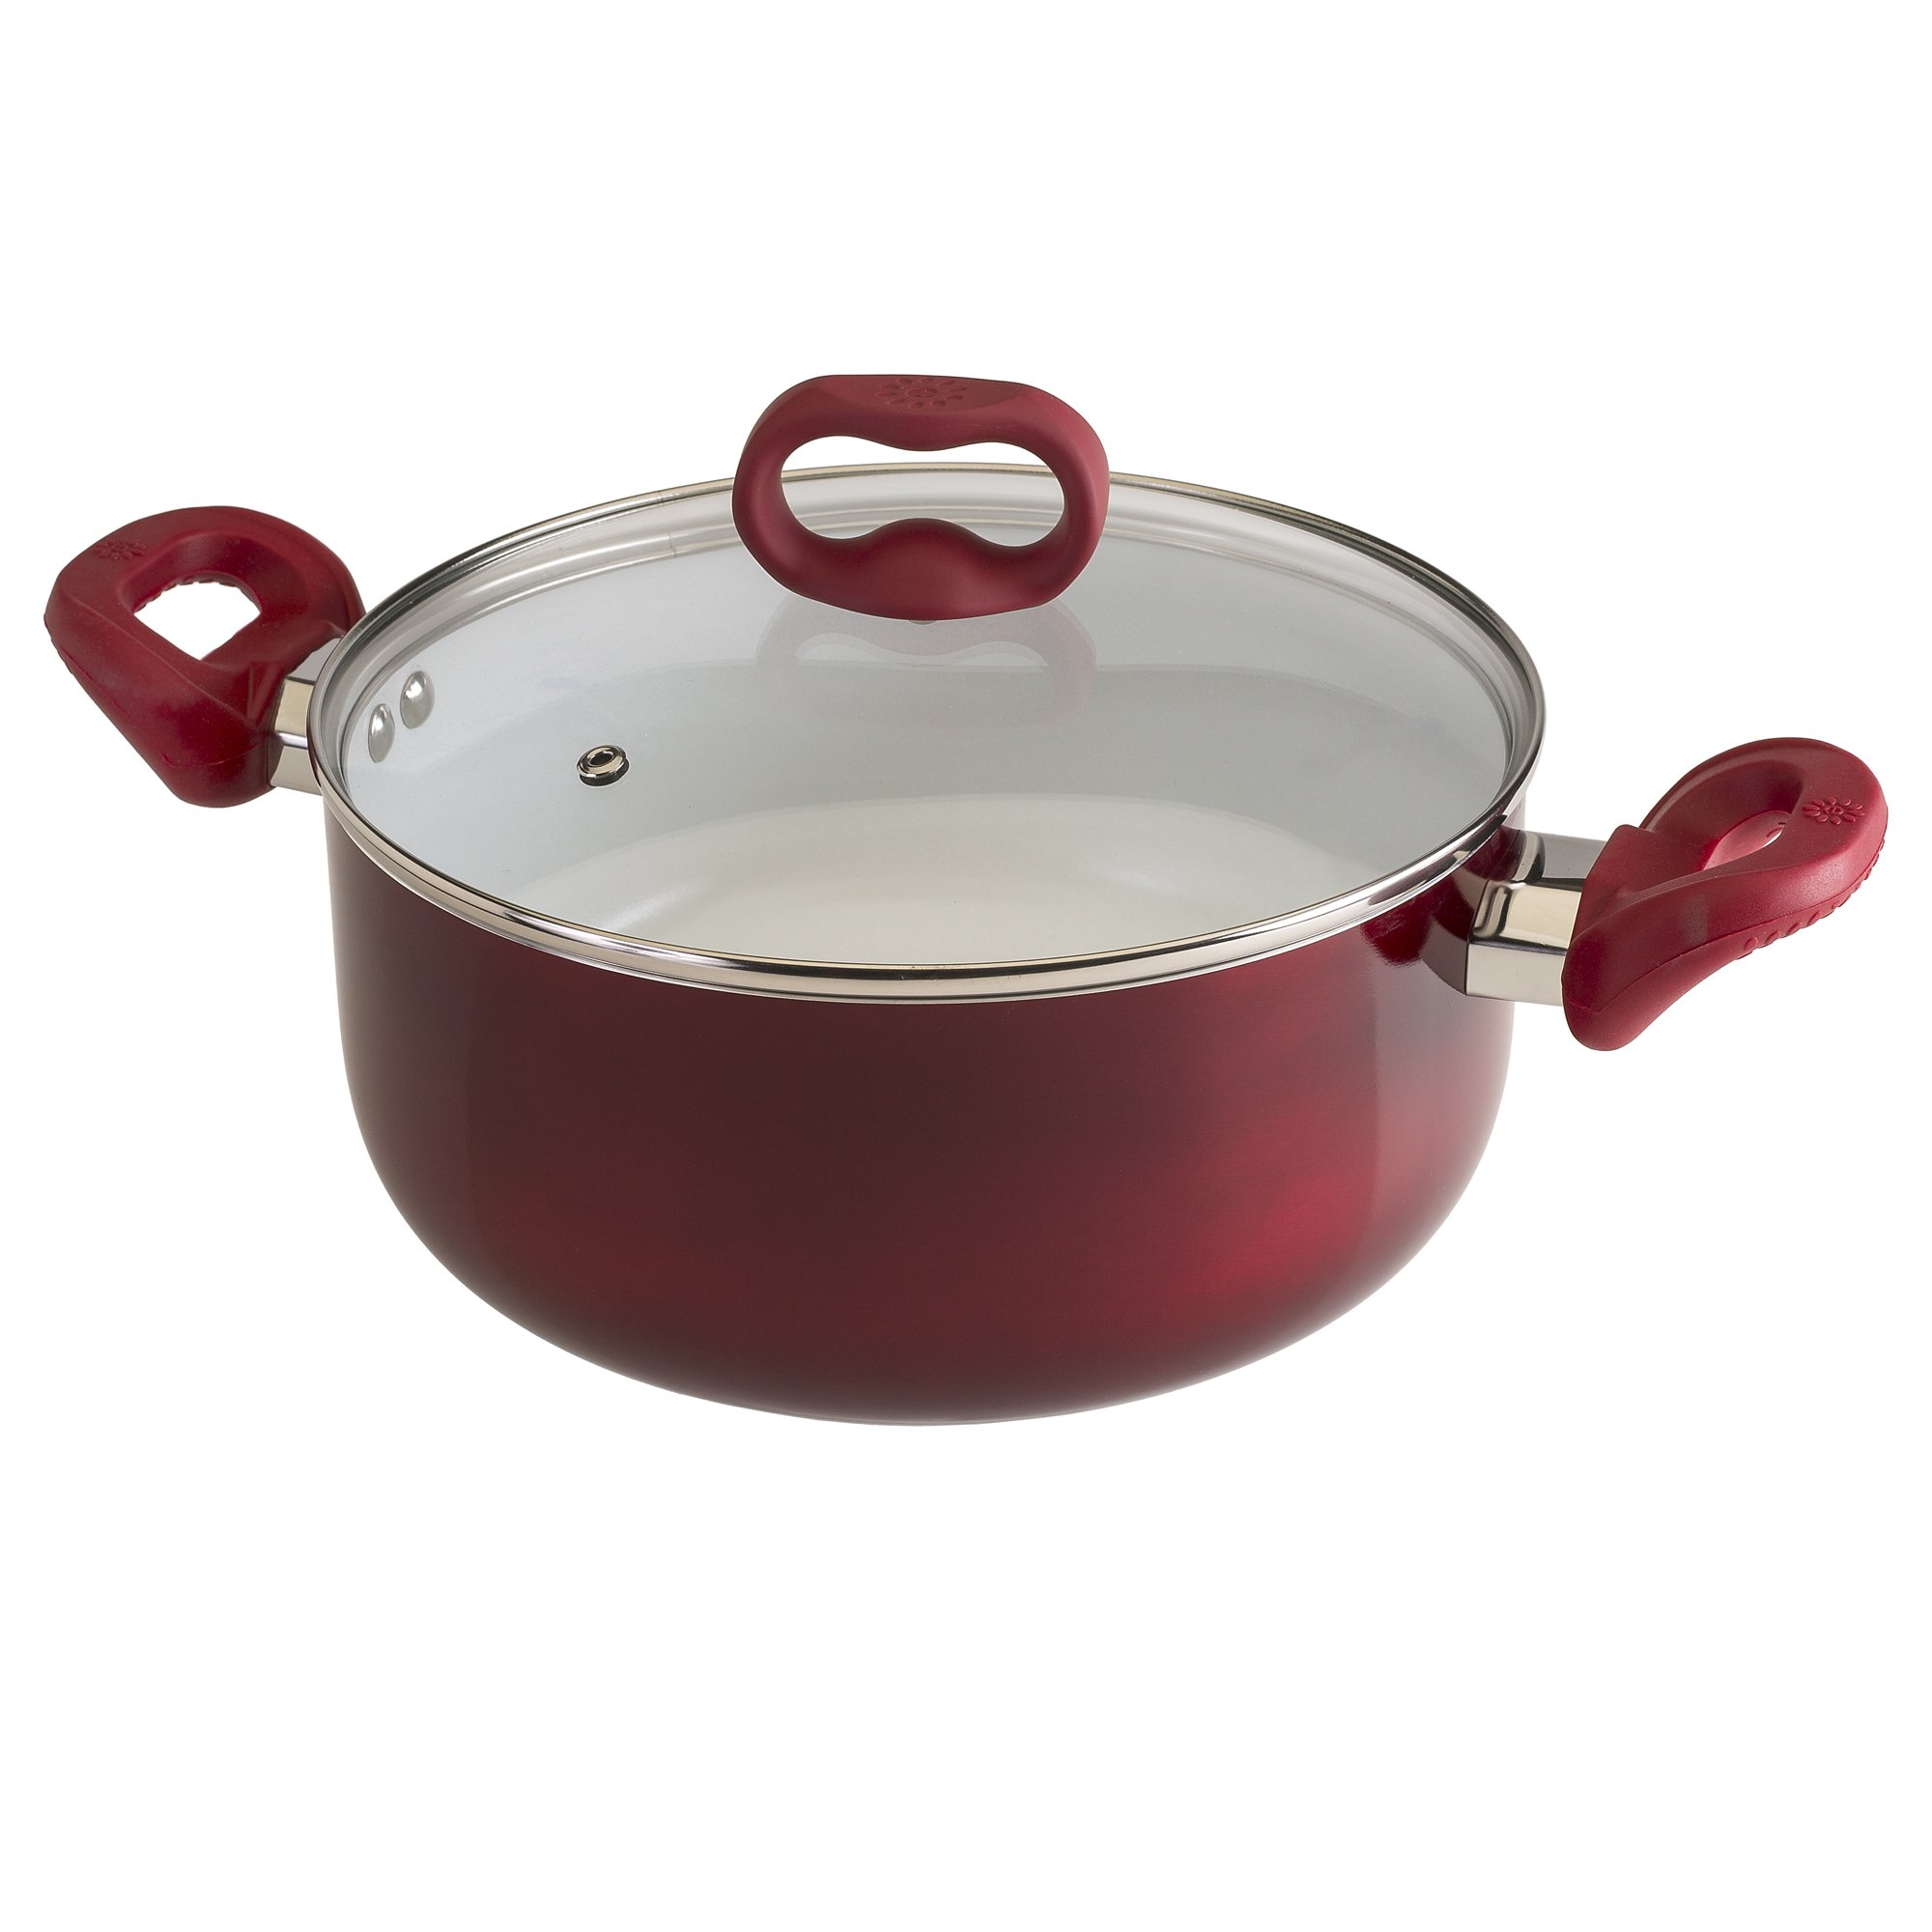 Ecolution Bliss 5 Qt. Non-Stick Dutch Oven W/Tempered Glass Lid with Steam Vent - PFOA, PTFE & Lead Free, , Candy Apple Exterior / White Interior